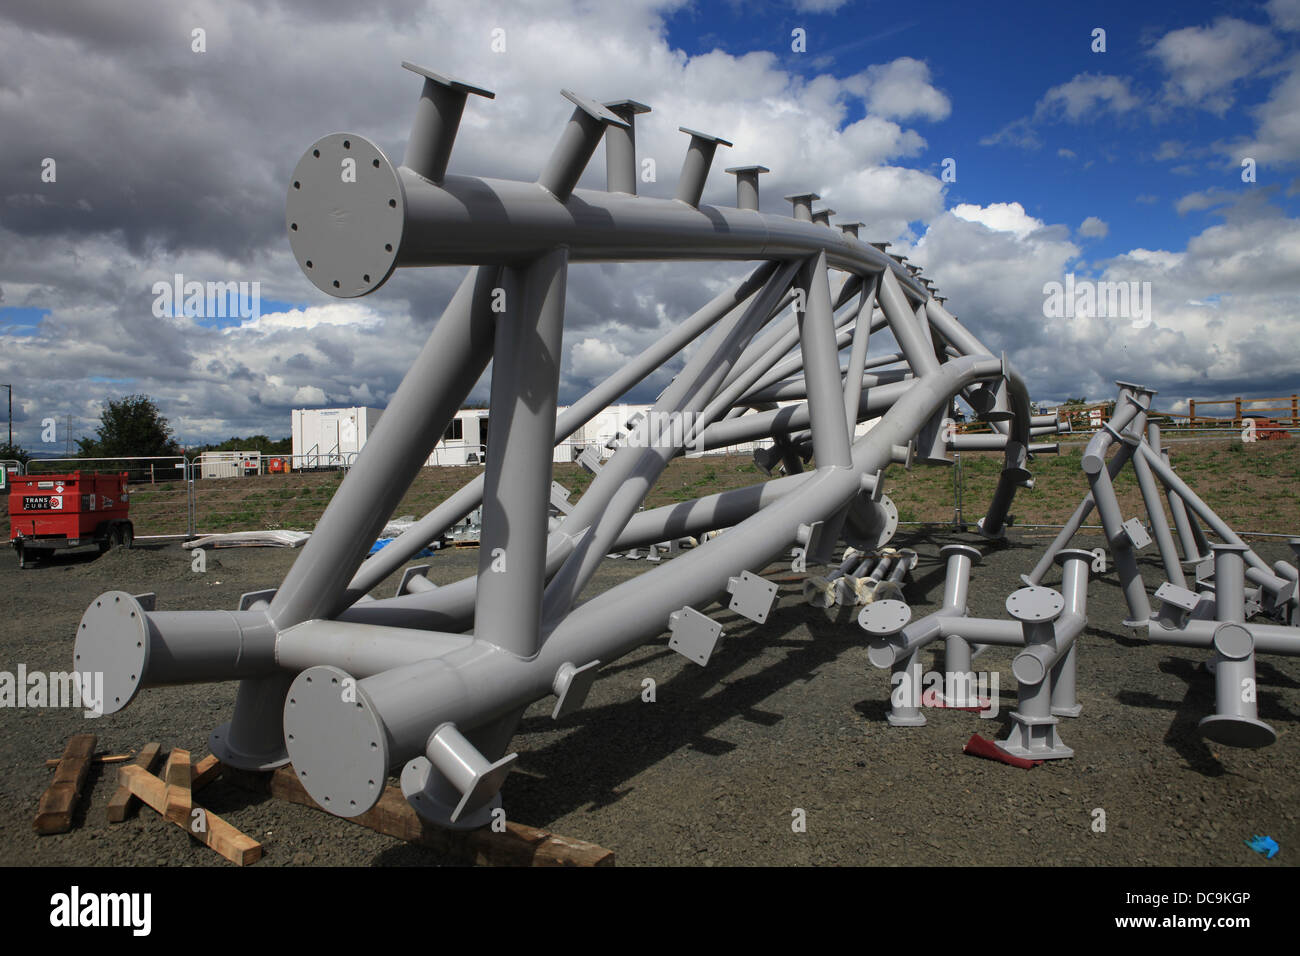 Steelwork on a construction site. Part of the Kelpie Helix project Falkirk Scotland. - Stock Image